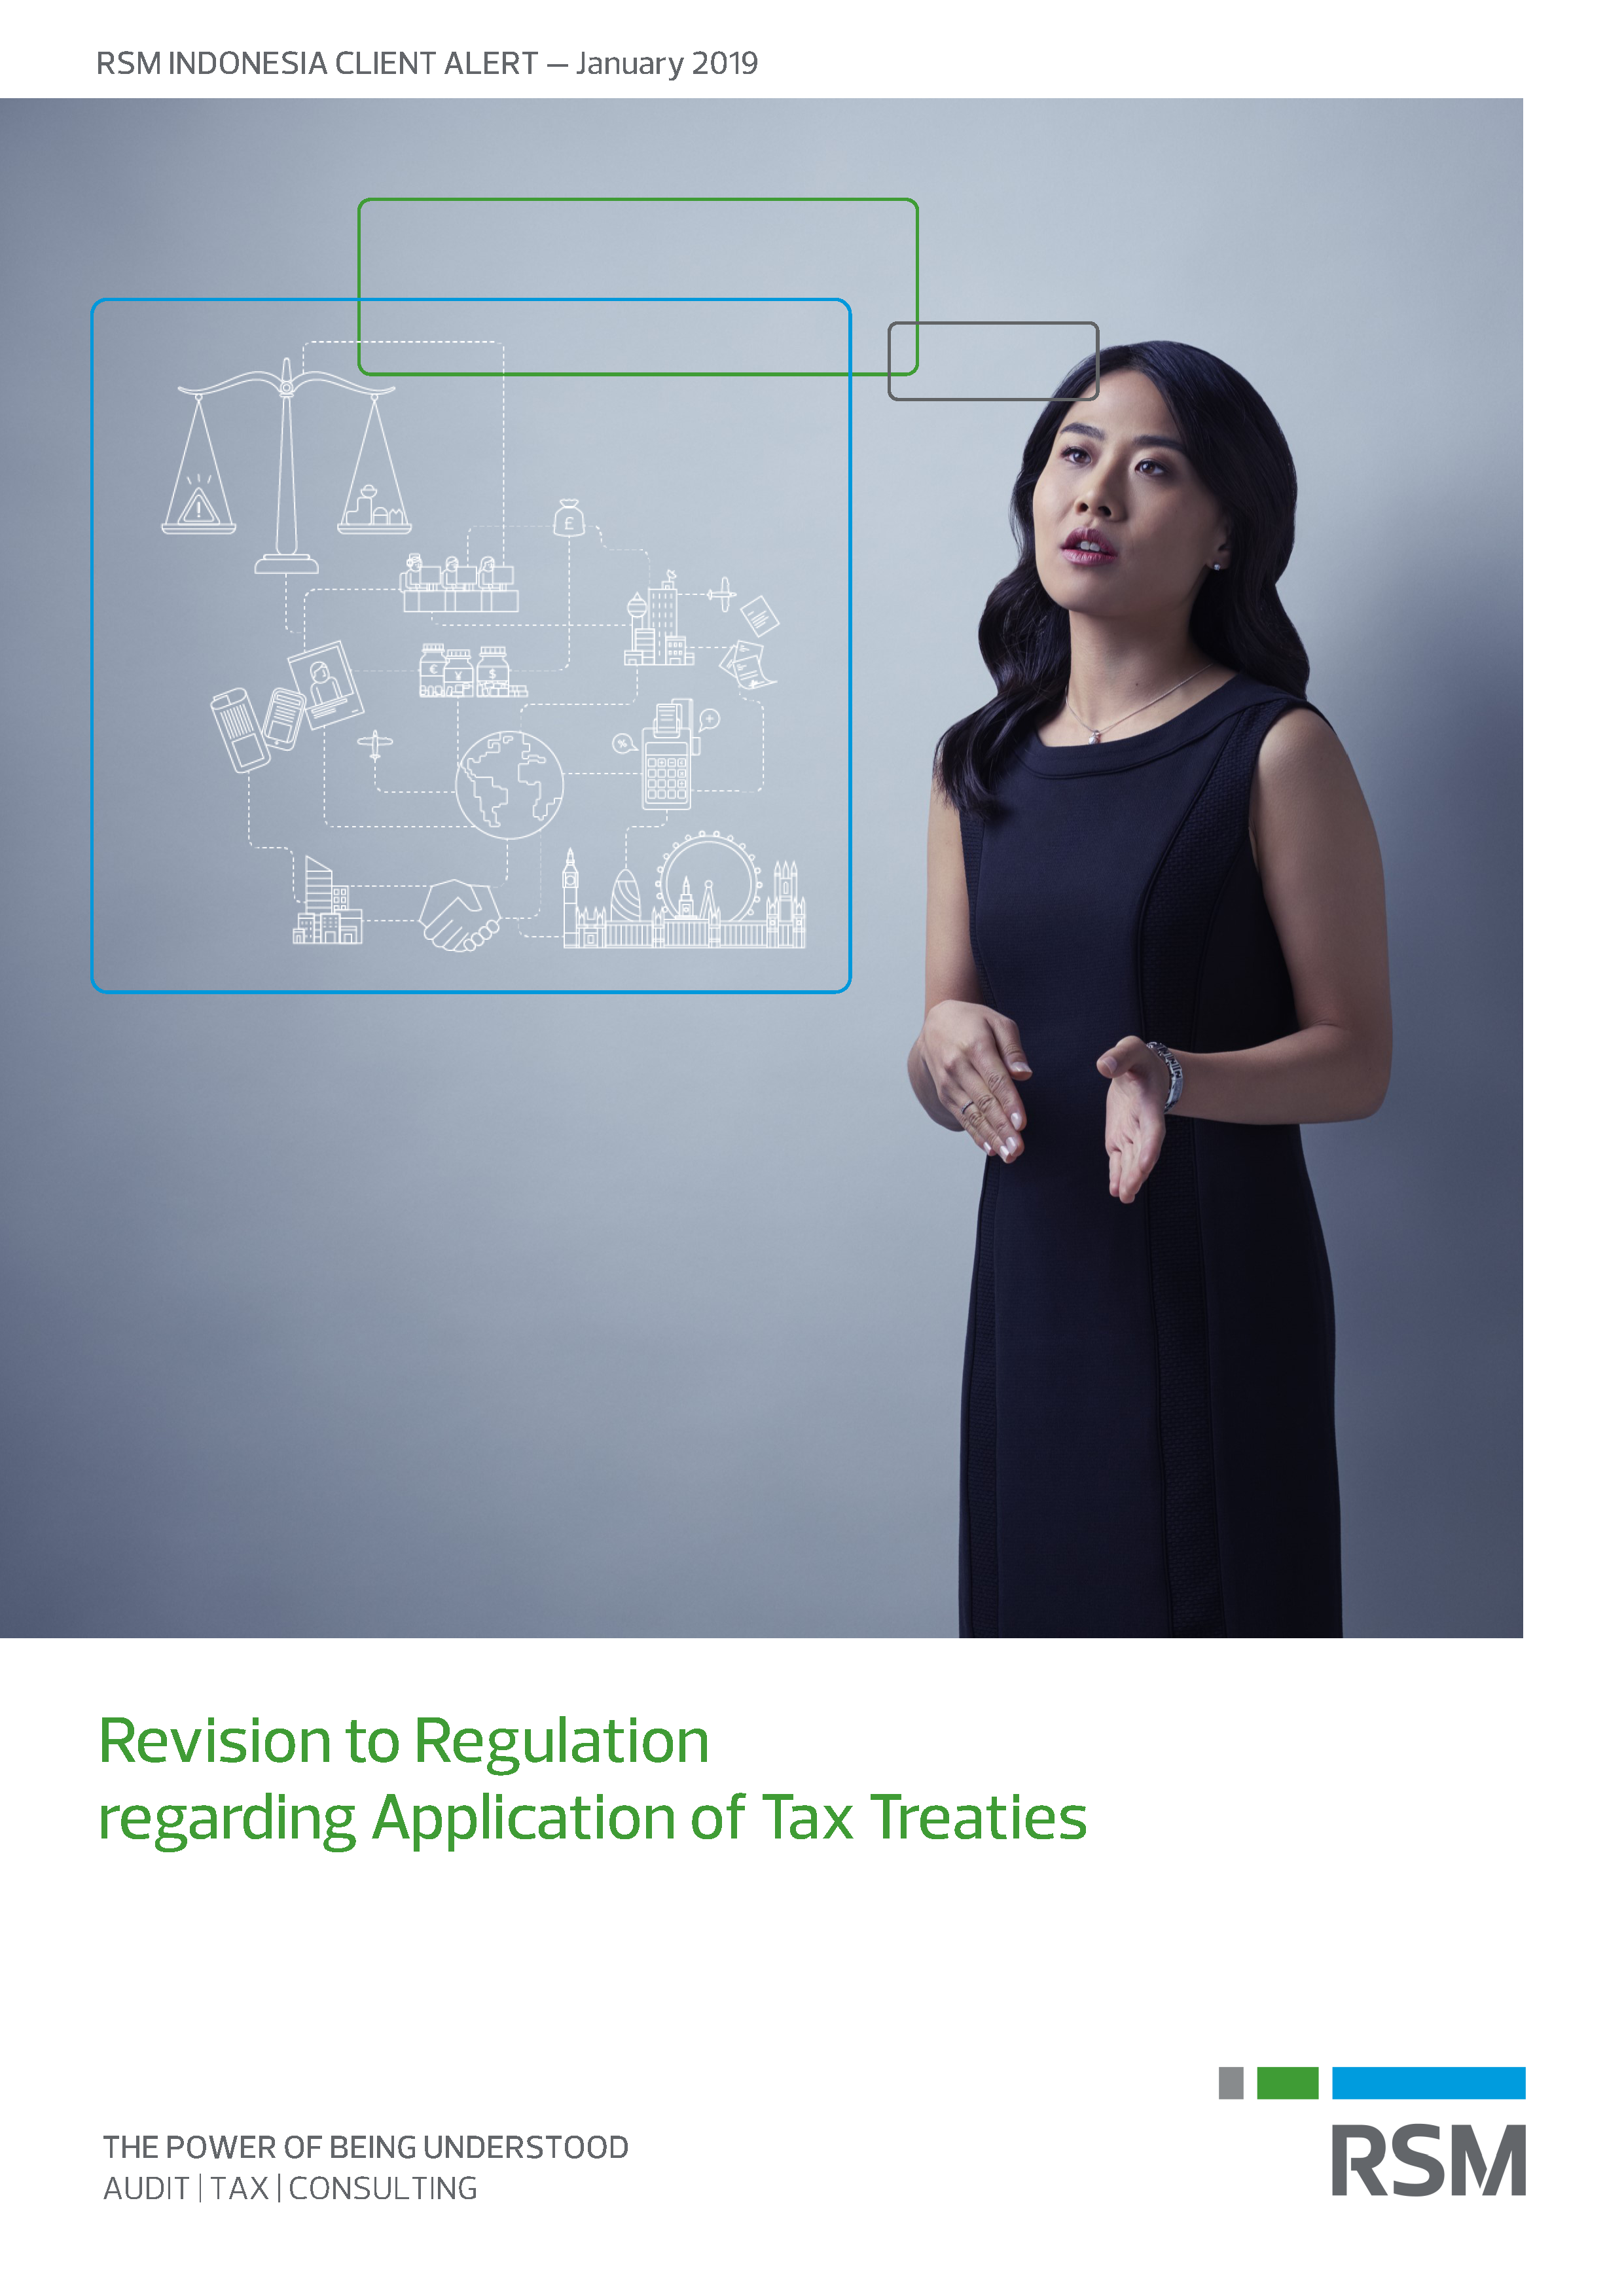 Revision to Regulation                                                               regarding Application of Tax Treaties.png